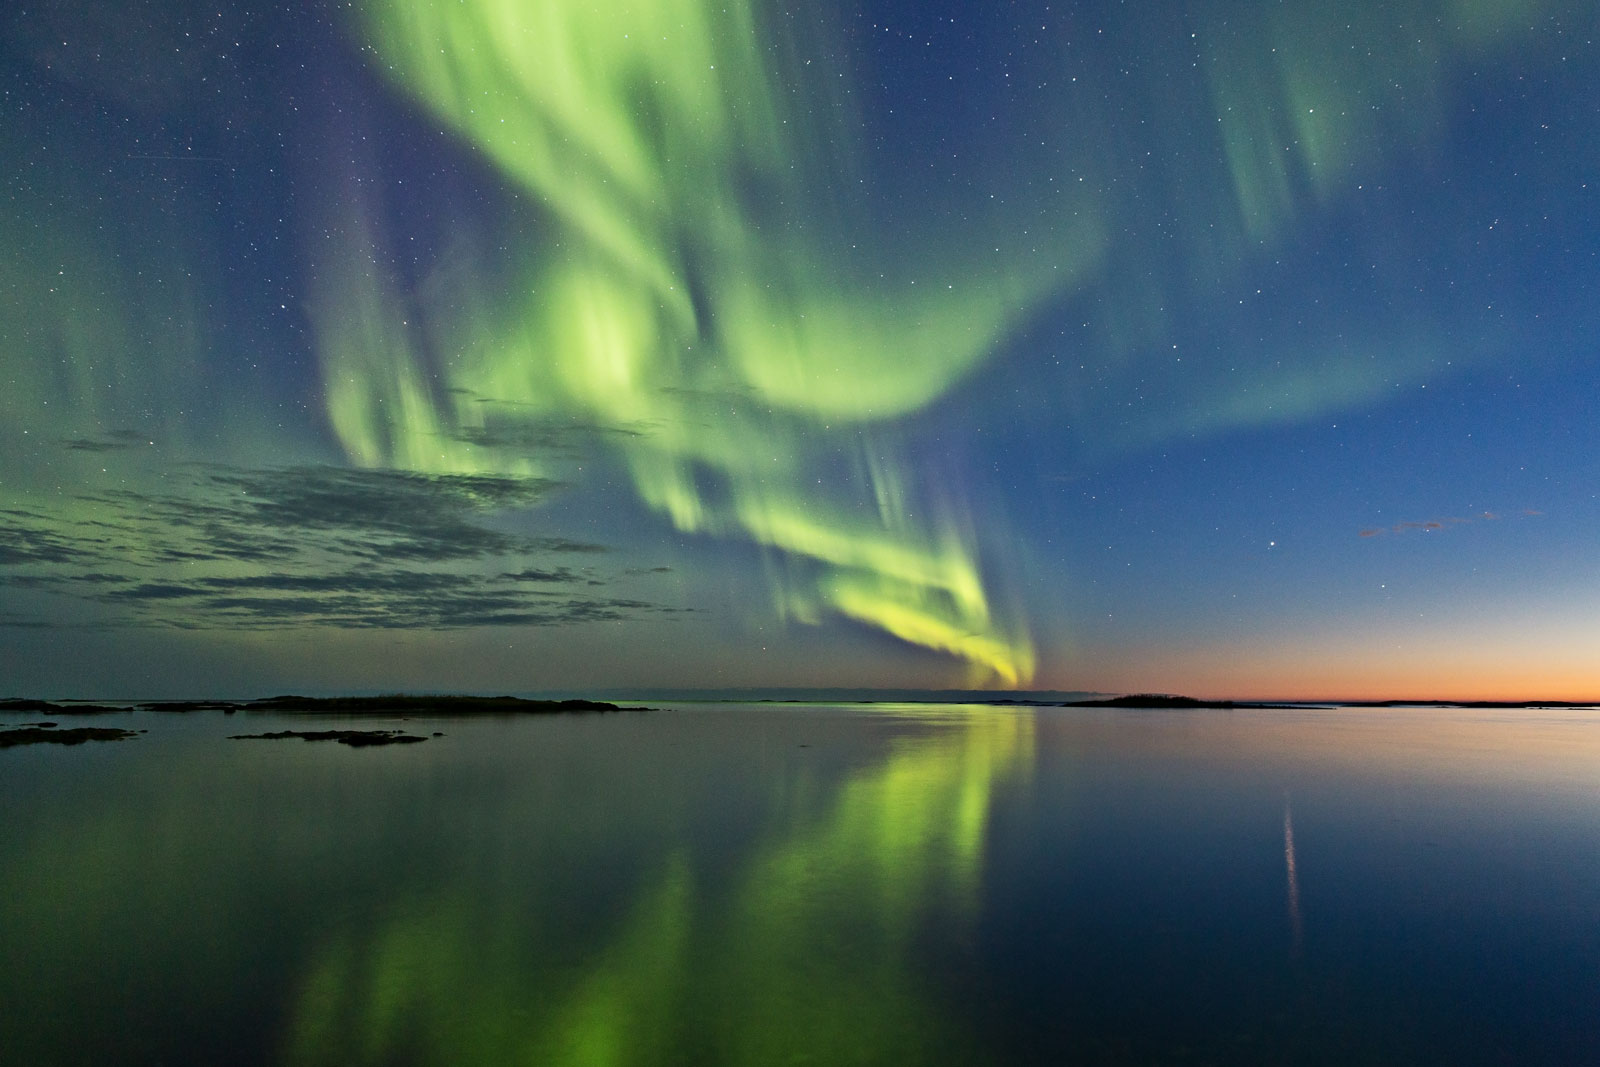 The northern and southern lights appear like drifting ribbons of light, but are actually the result of turmoil in the upper atmosphere. Image by Frank Olsen/Wikimedia